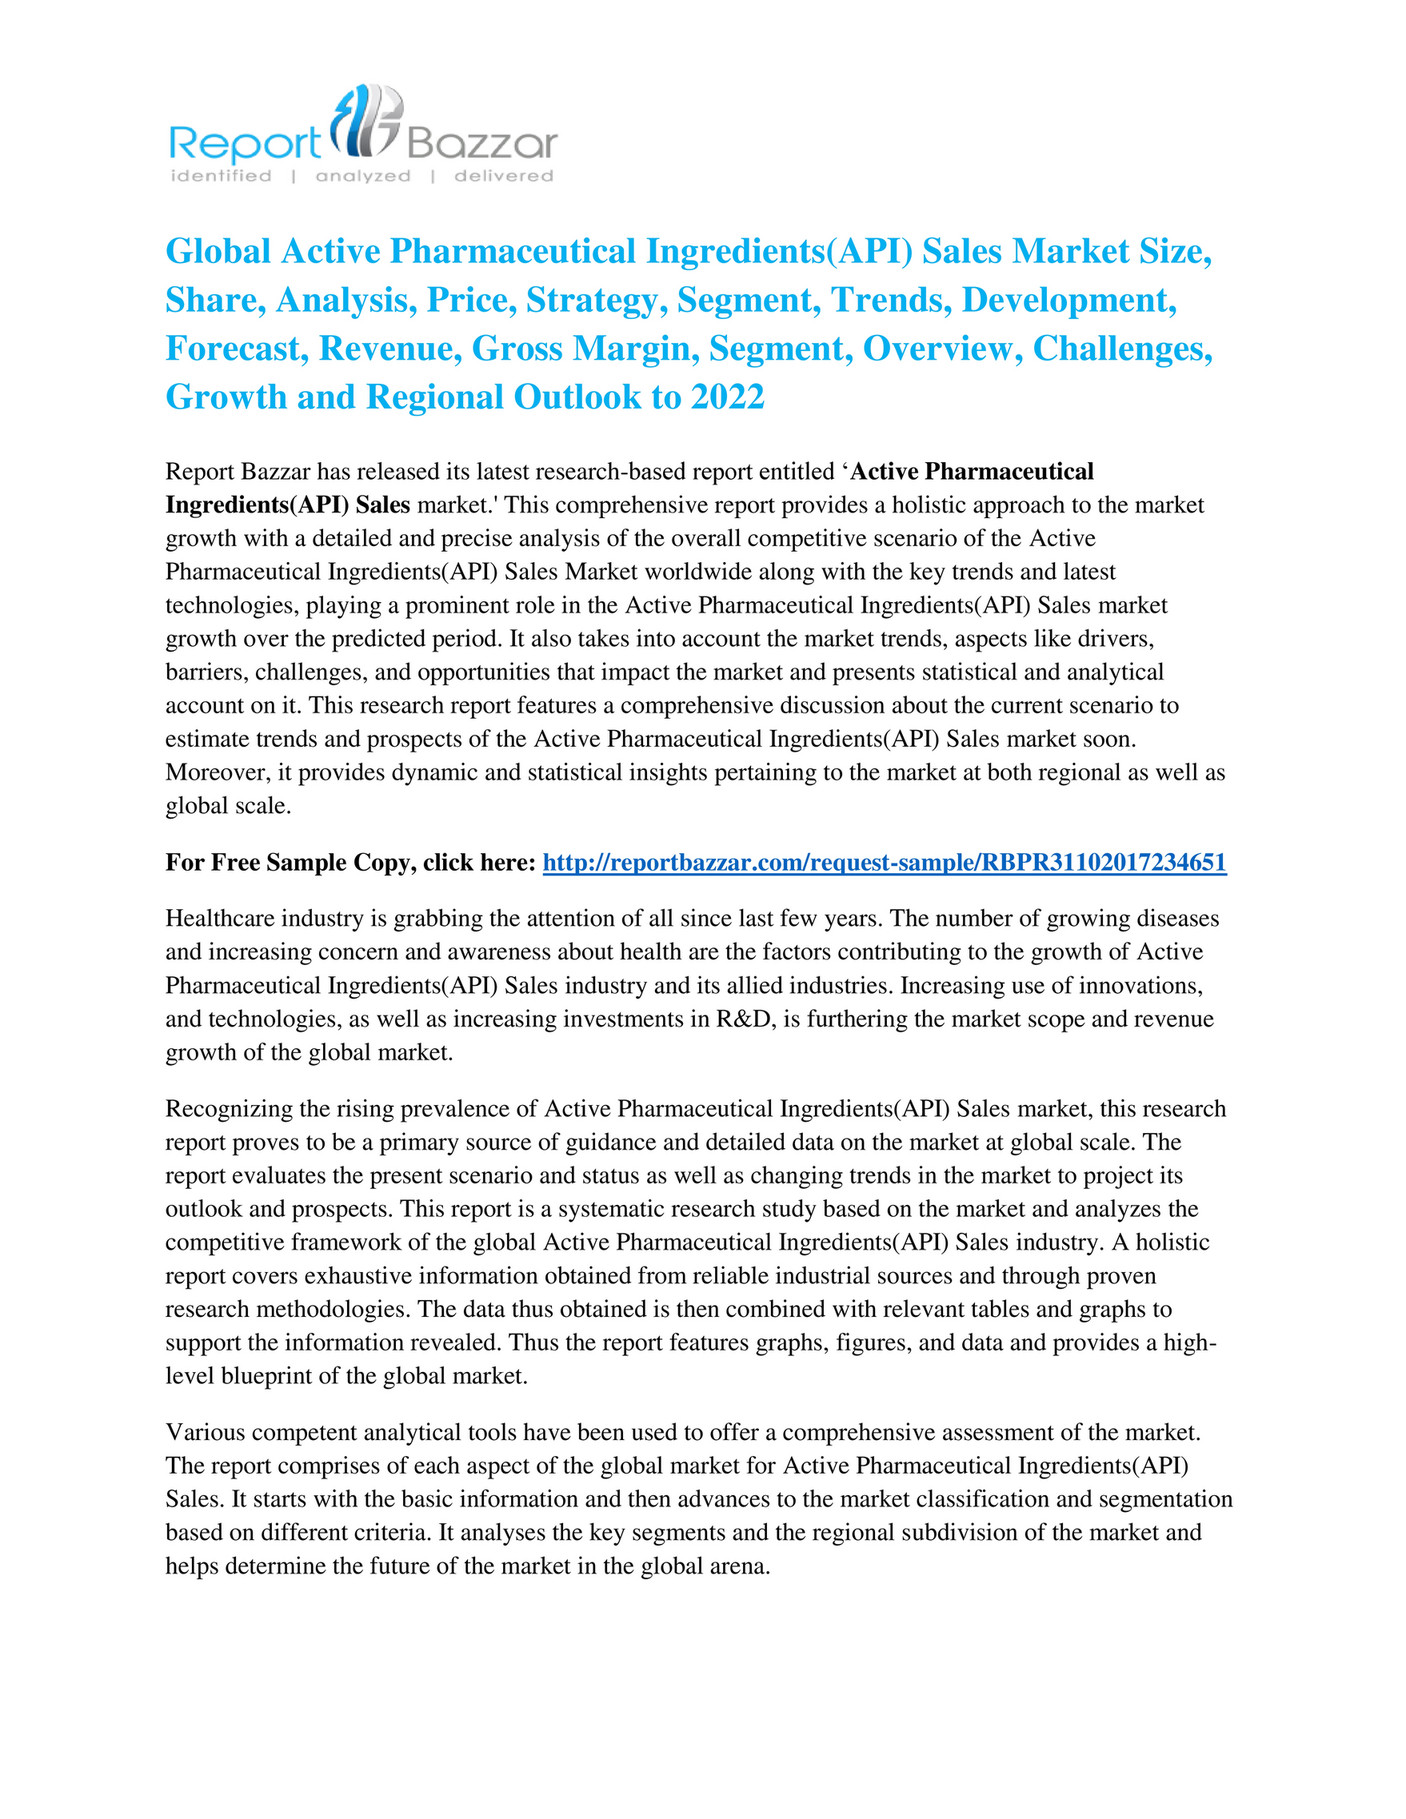 Report Bazzar - Active Pharmaceutical Ingredients(API) Sales